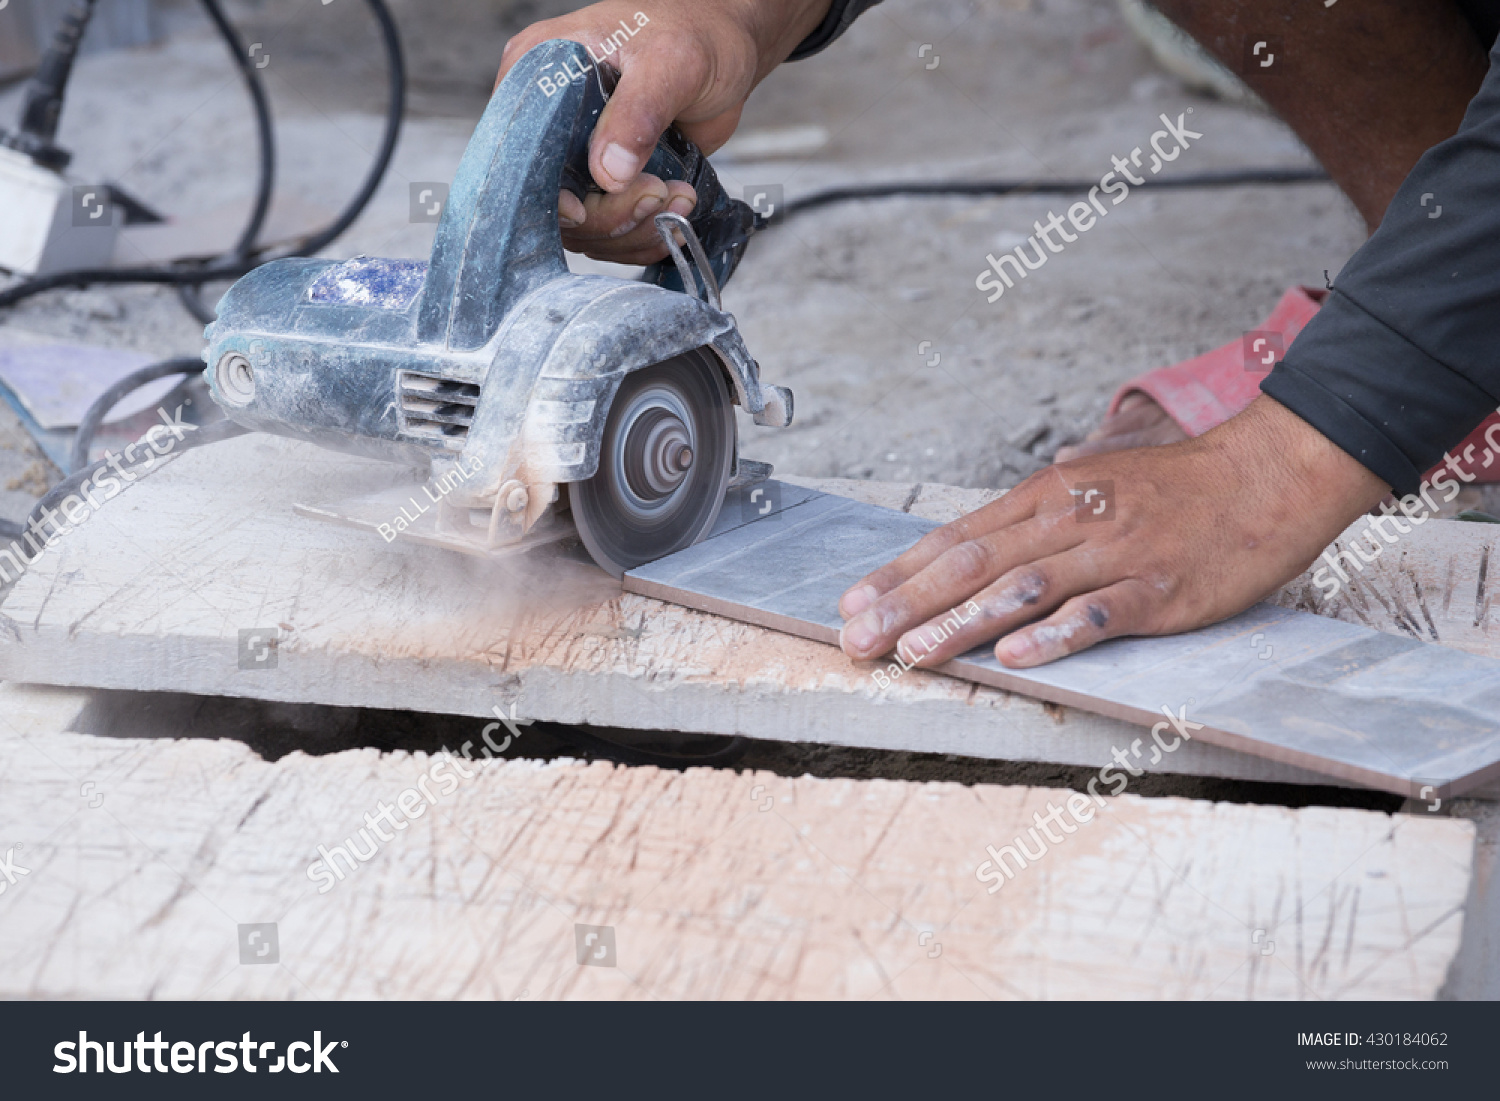 Worker cutting tile using angle grinder stock photo 430184062 worker cutting a tile using an angle grinder at construction site dailygadgetfo Choice Image